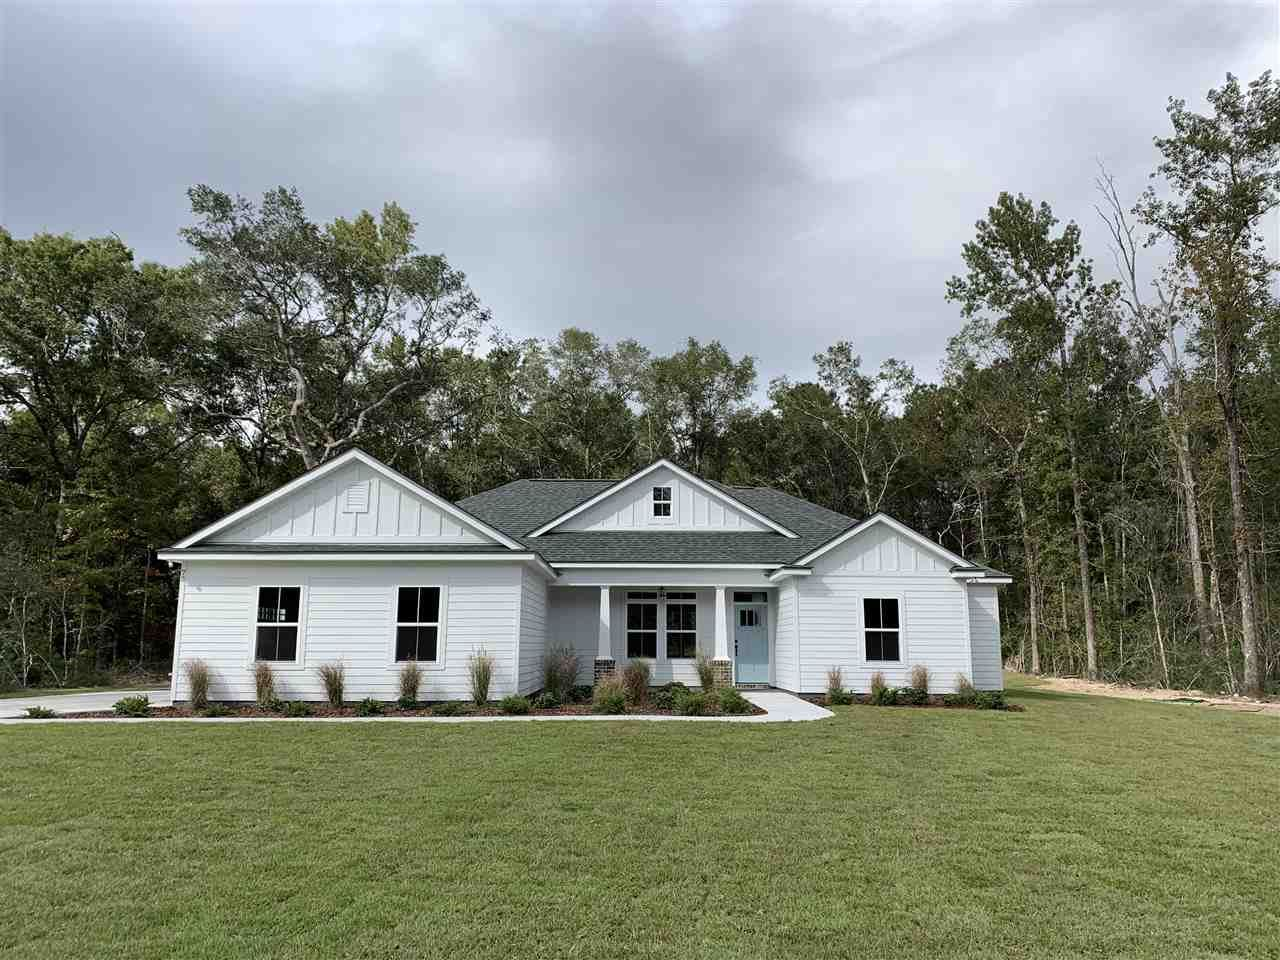 0 Tillis Lane, Crawfordville, FL 32327 - MLS#: 326768